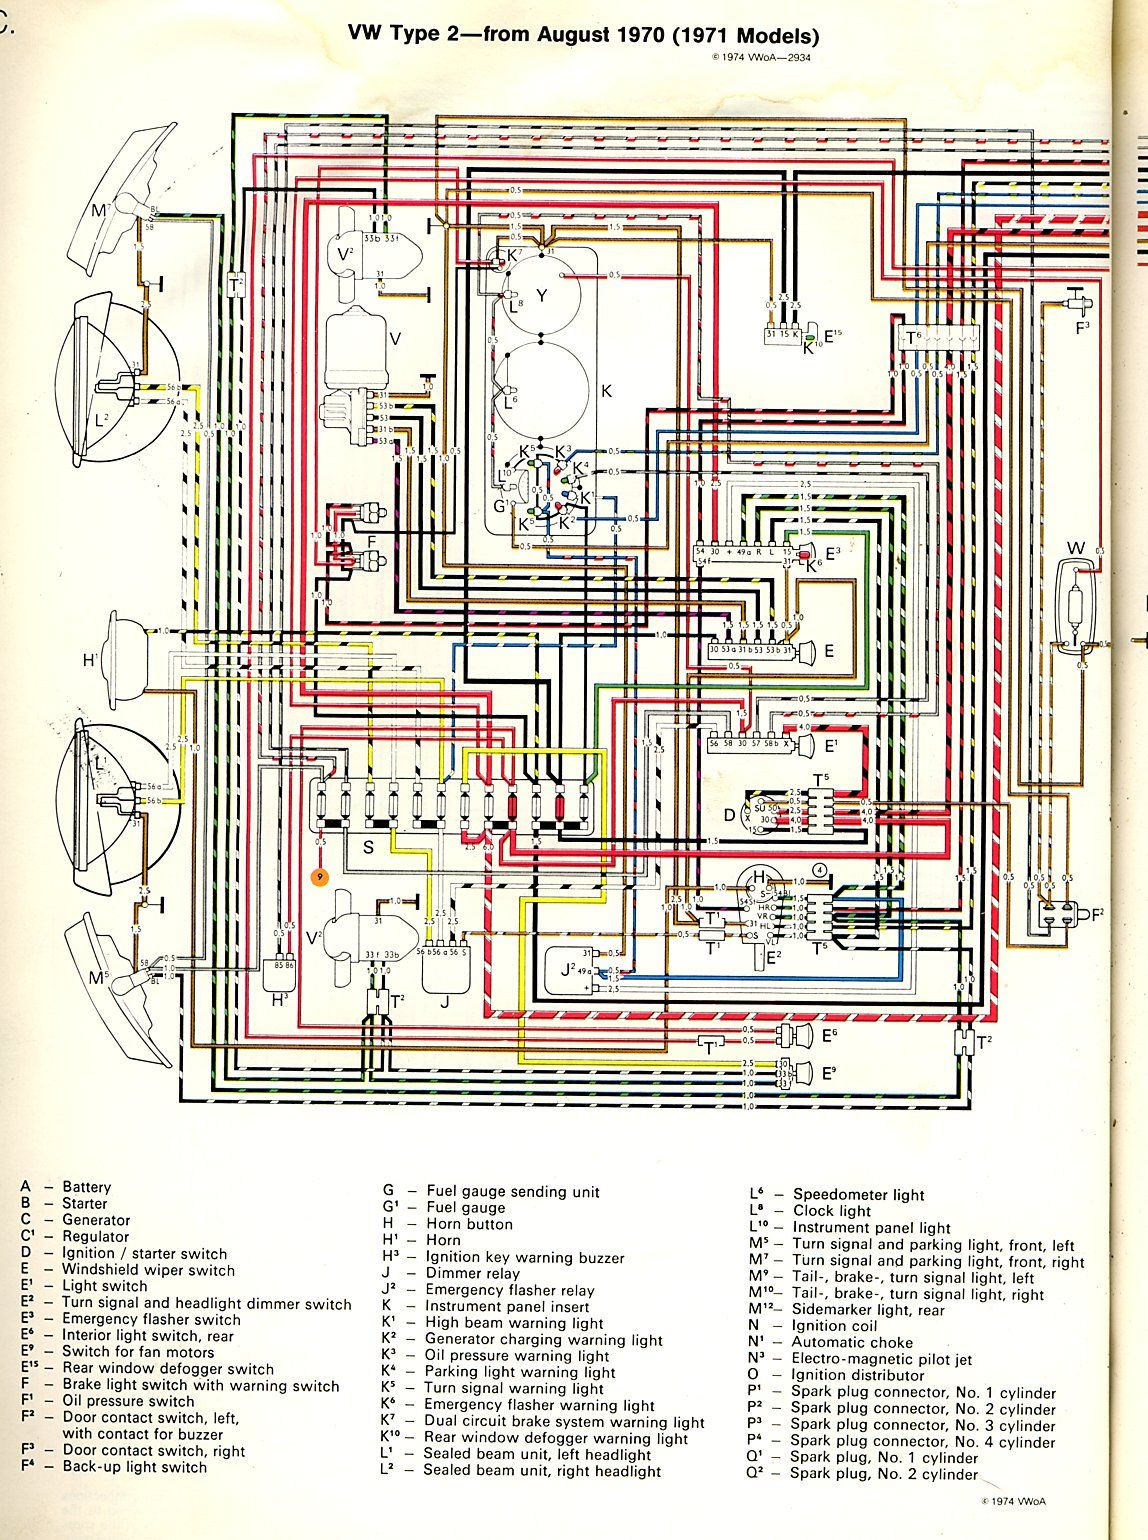 1971 Bus Wiring diagram | Electrical wiring diagram, Vw bus, Diagram | Bus Electrical Wiring Diagrams |  | Pinterest